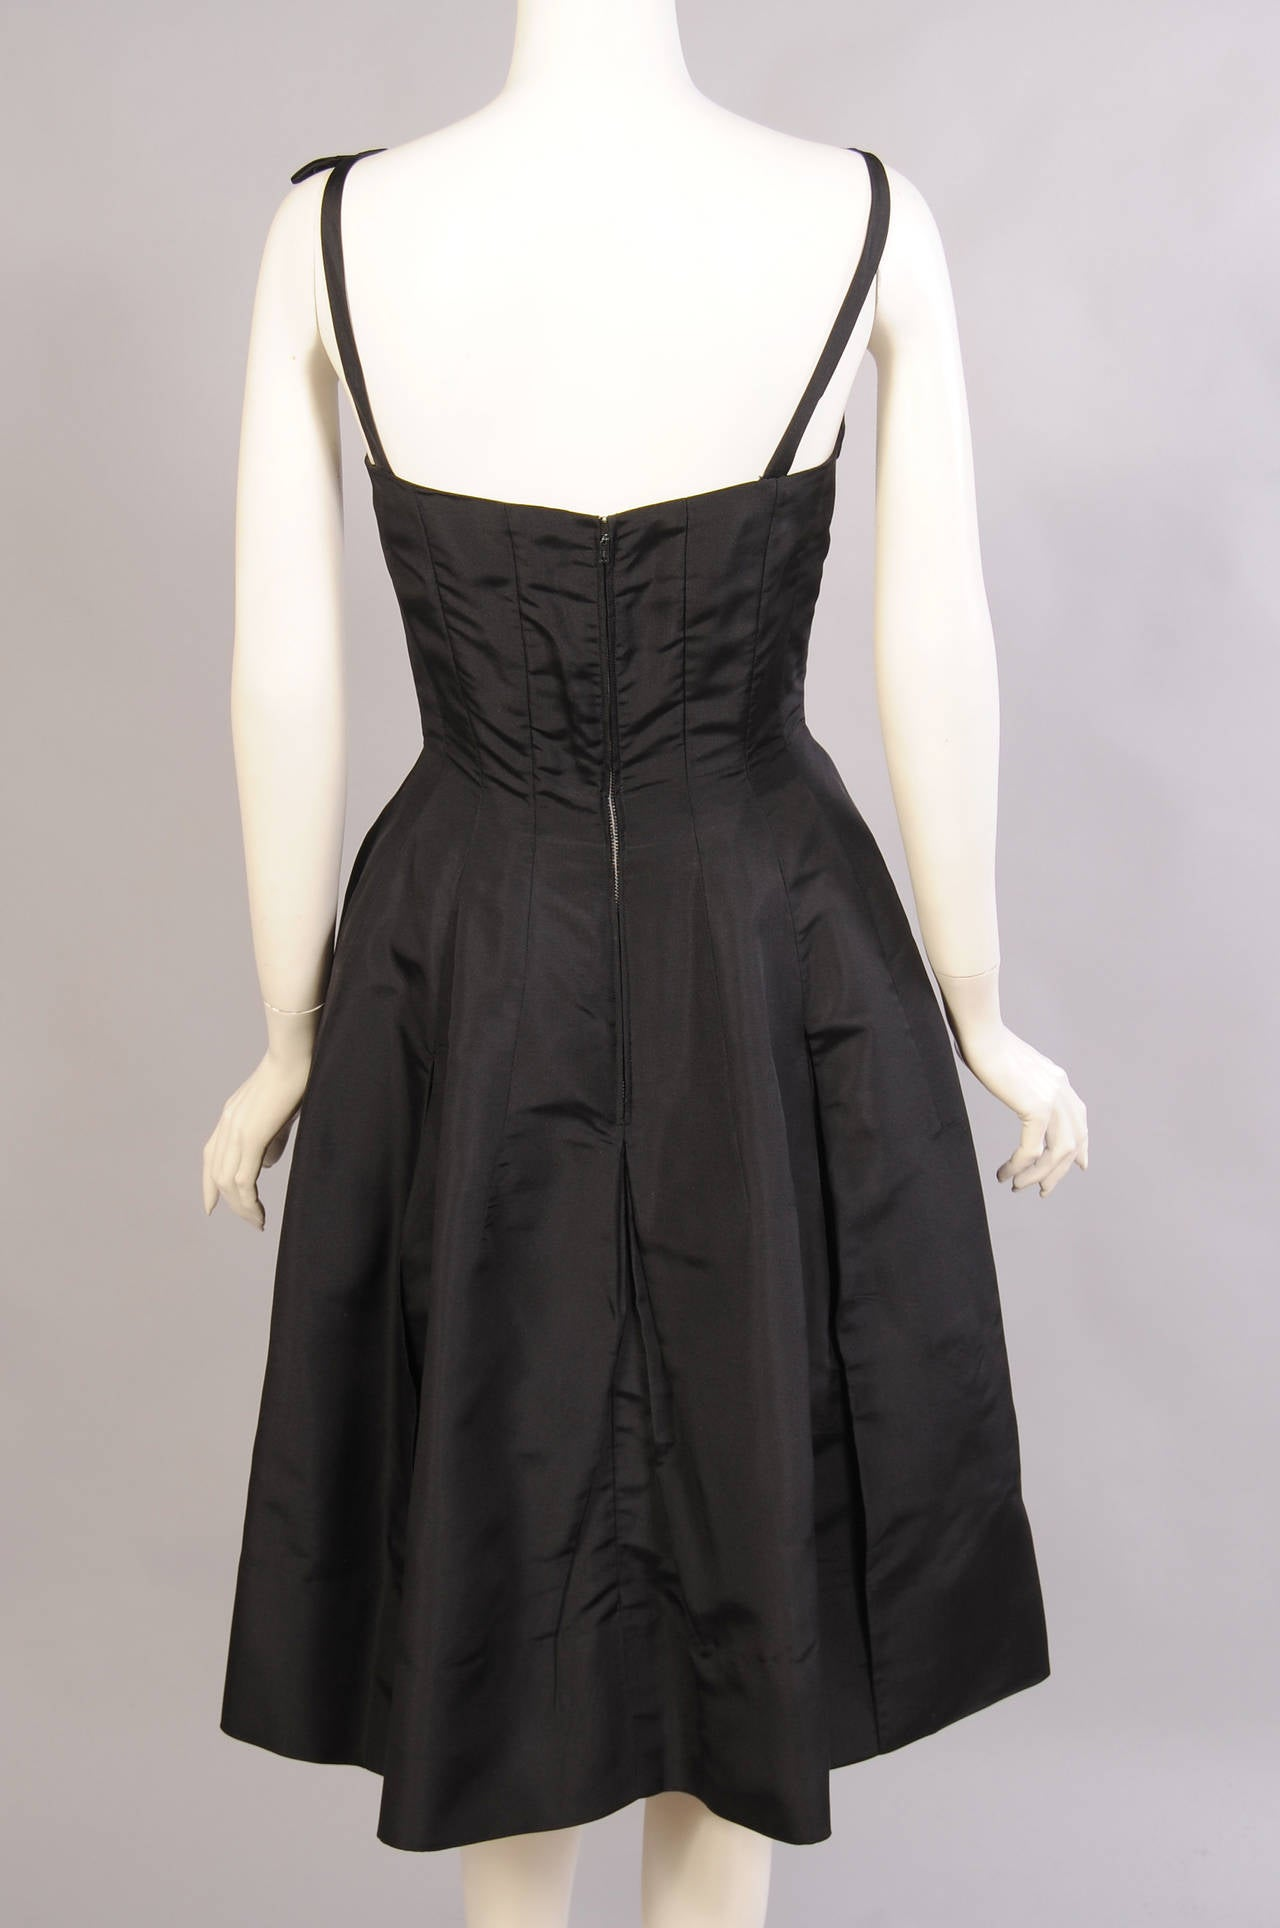 1960's Oleg Cassini Black Silk Cocktail Dress 5